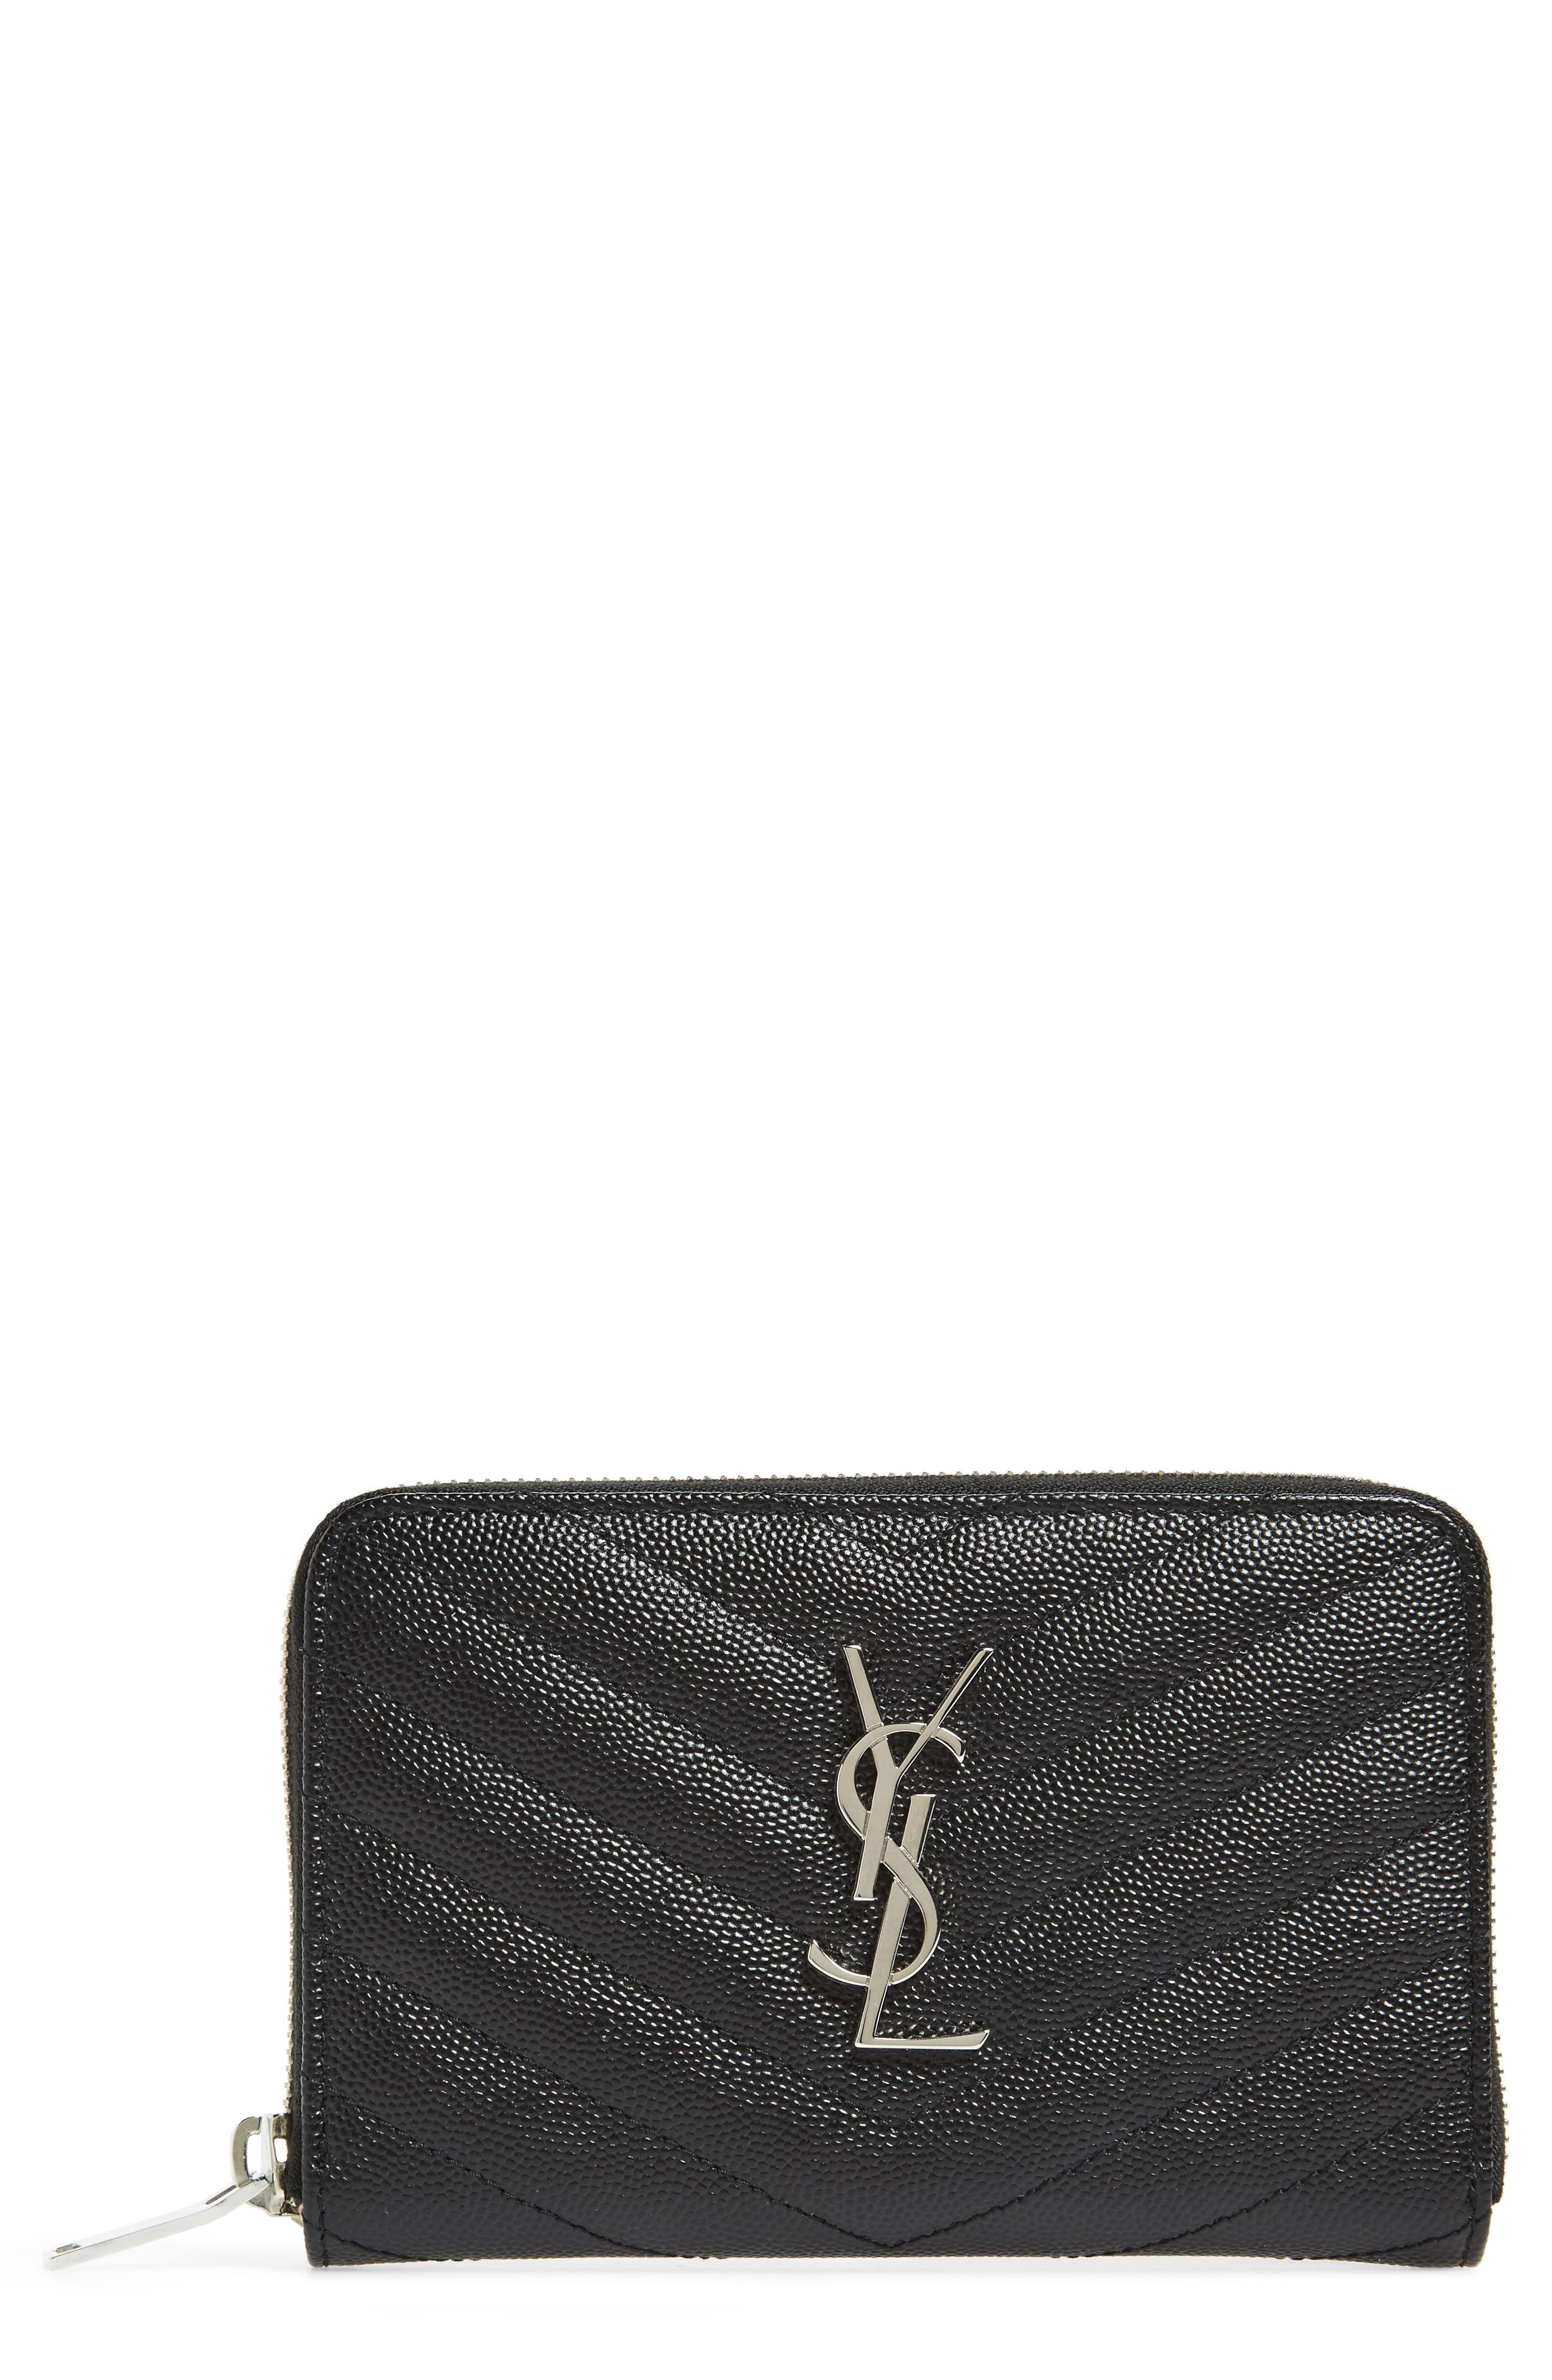 Small Grained Leather Zip Around Wallet,                             Main thumbnail 1, color,                             001